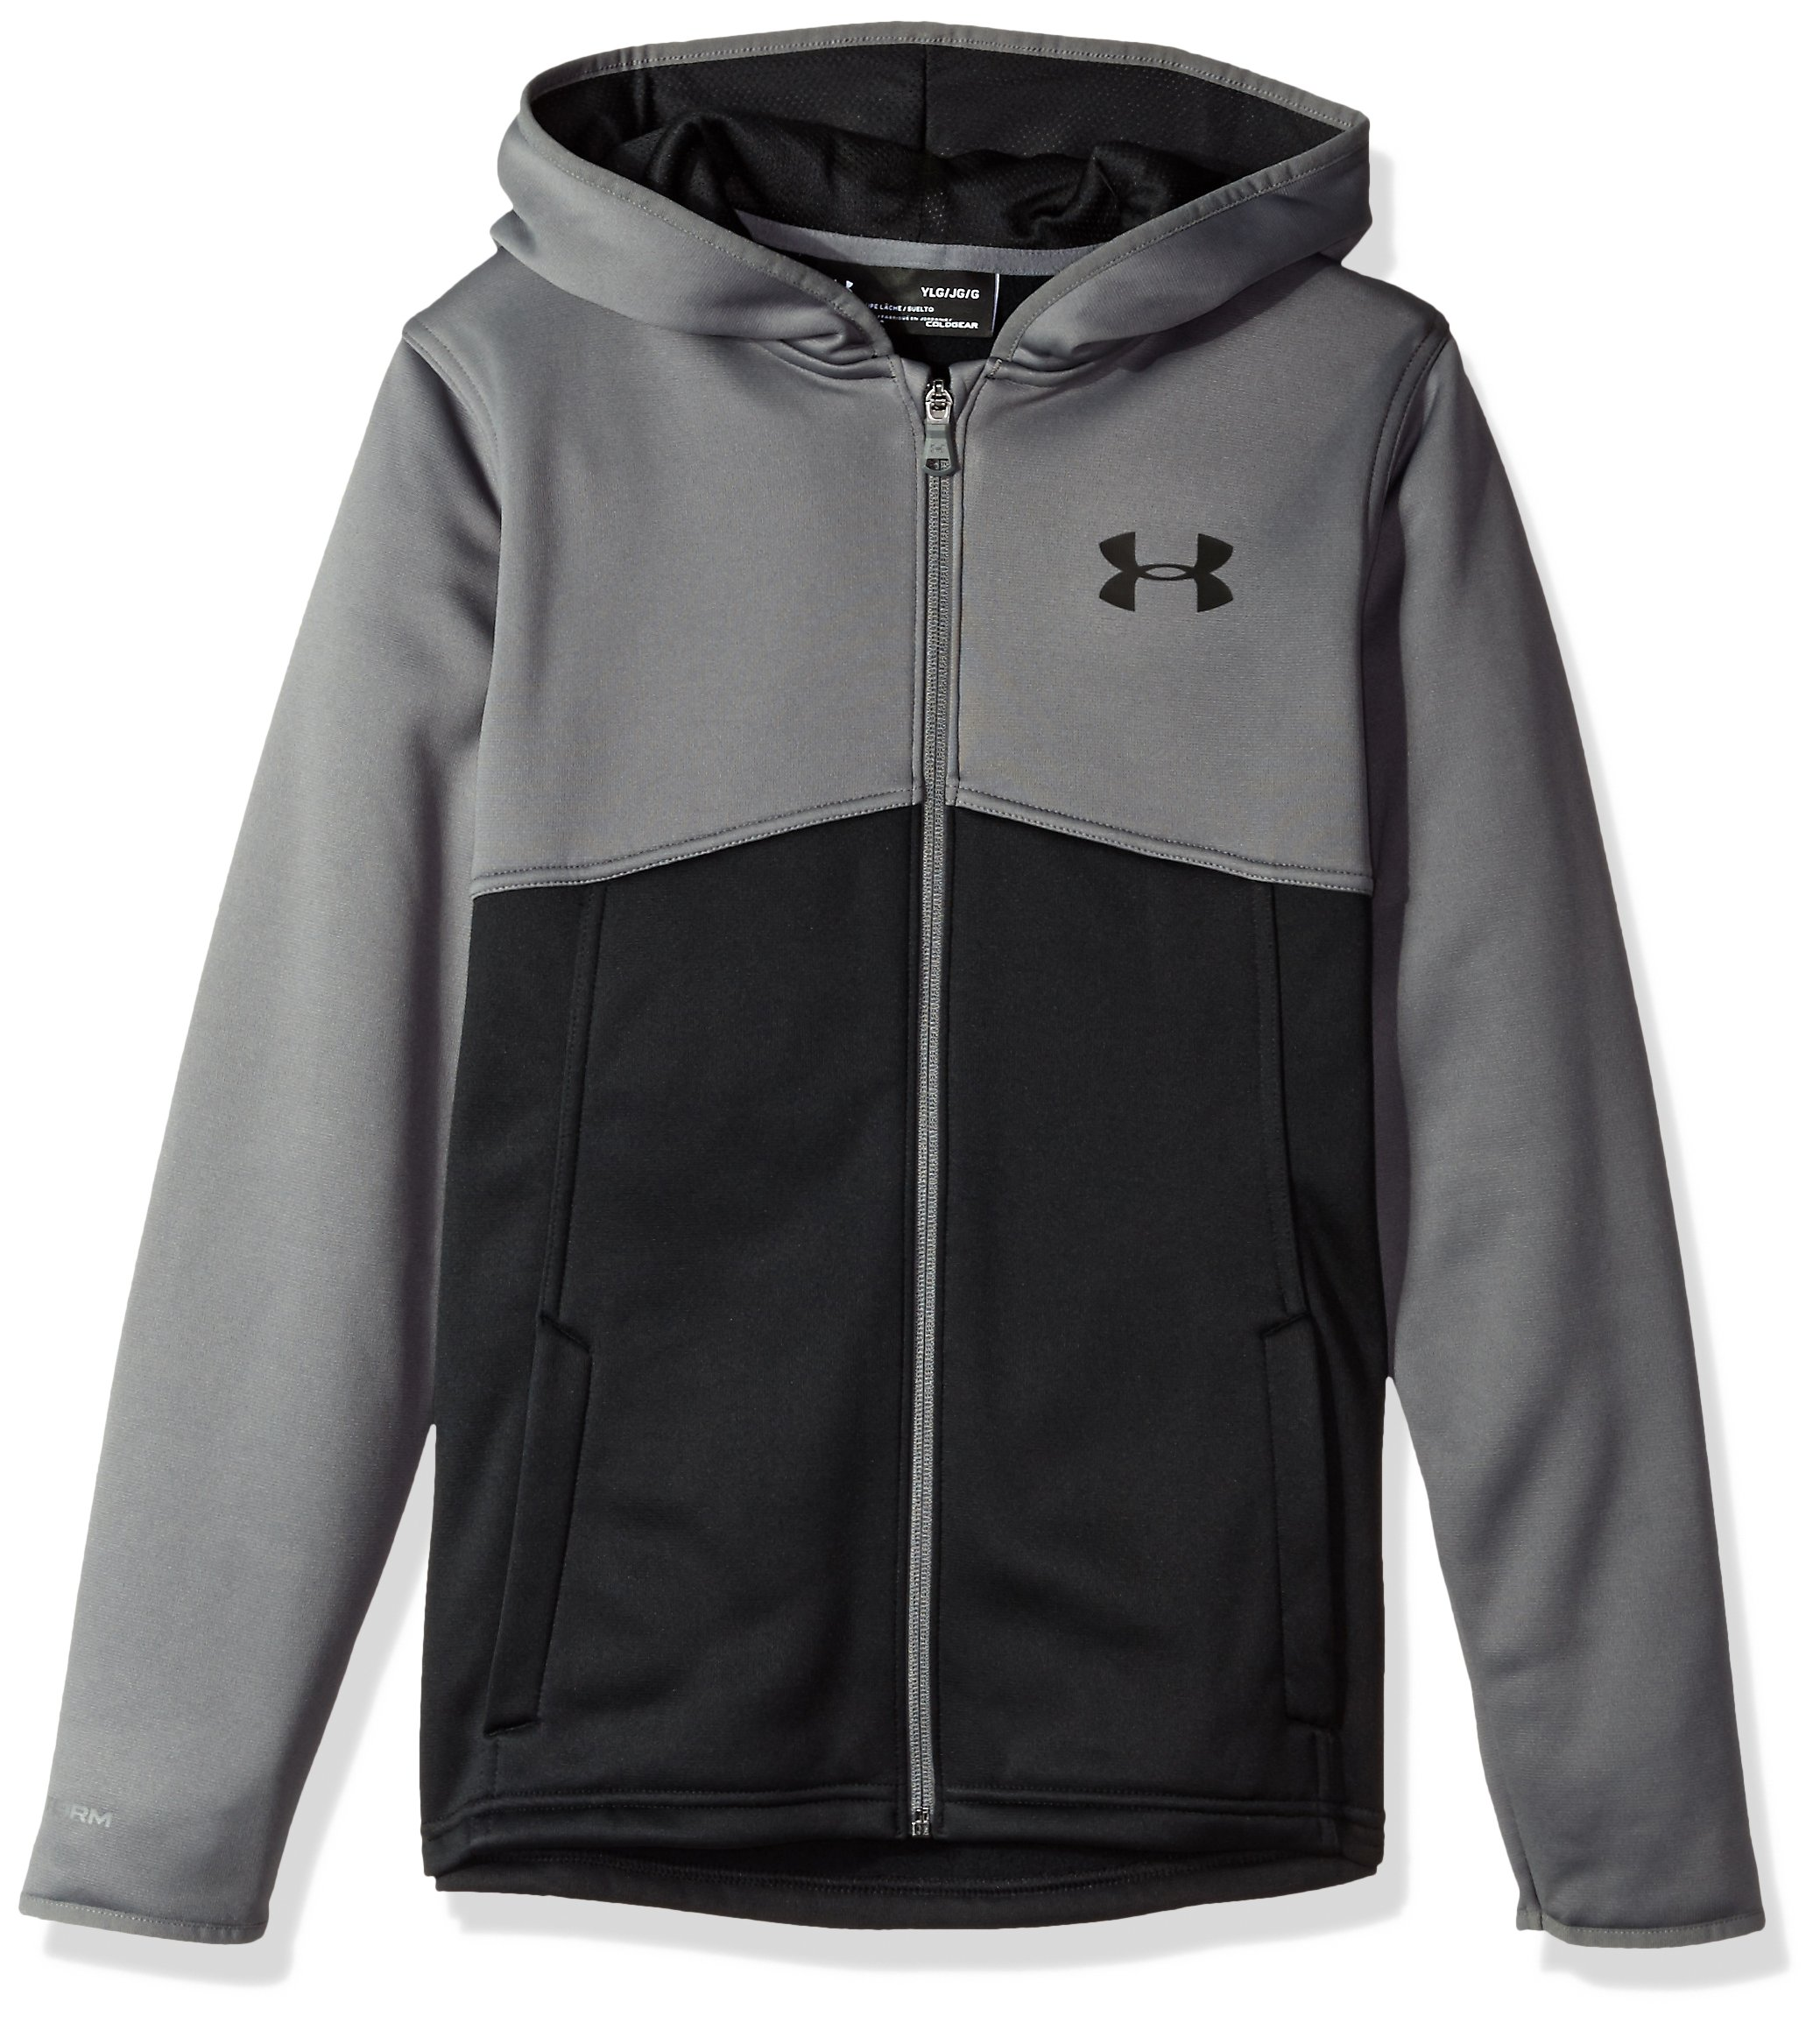 Under Armour Boys' Armour Fleece Full Zip Hoodie,Black (001)/Black, Youth X-Small